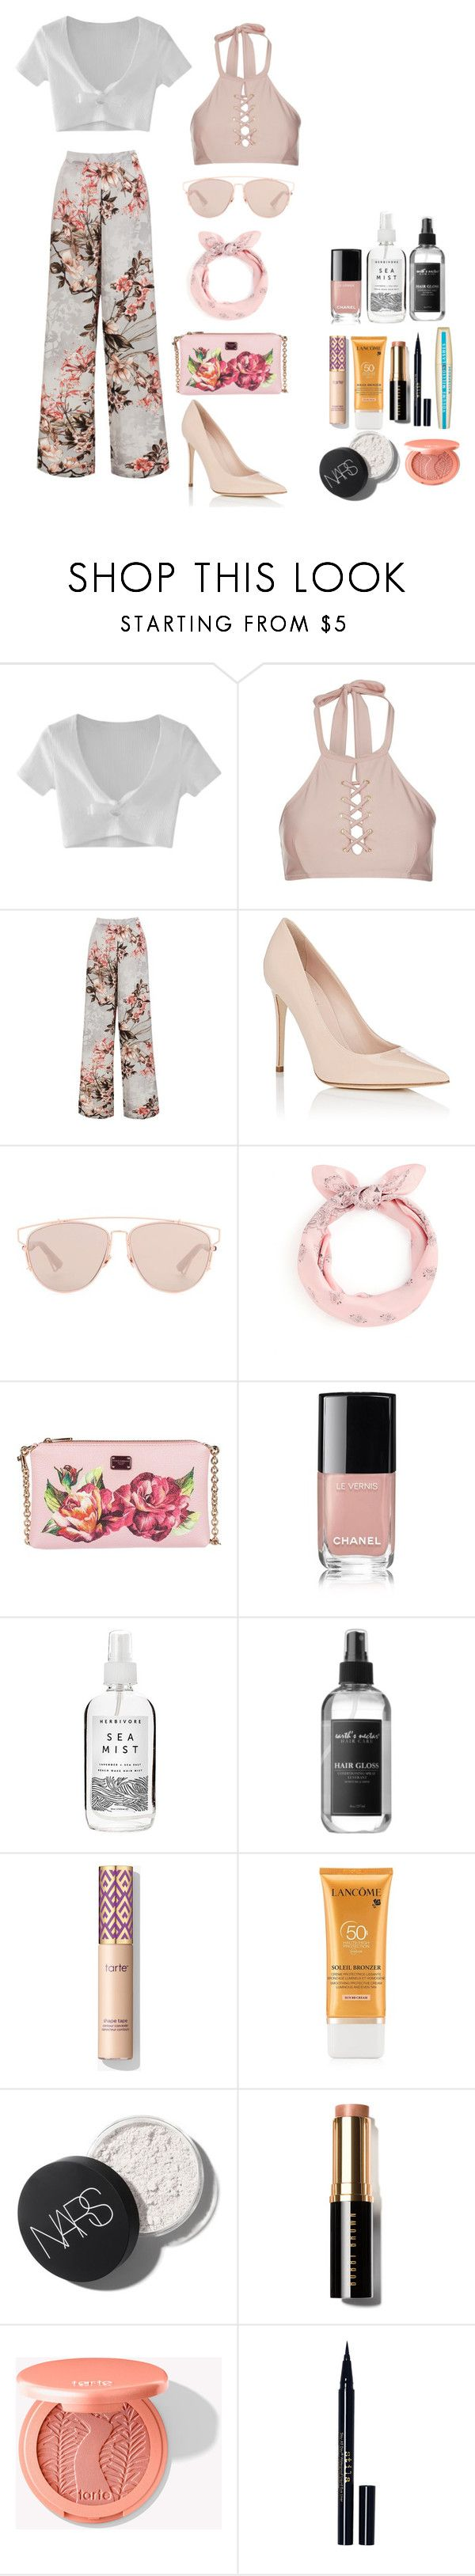 """Untitled #116"" by rahmadita14 on Polyvore featuring WithChic, Topshop, Sans Souci, Barneys New York, Christian Dior, Dolce&Gabbana, Chanel, Herbivore, Earth's Nectar and Lancôme"